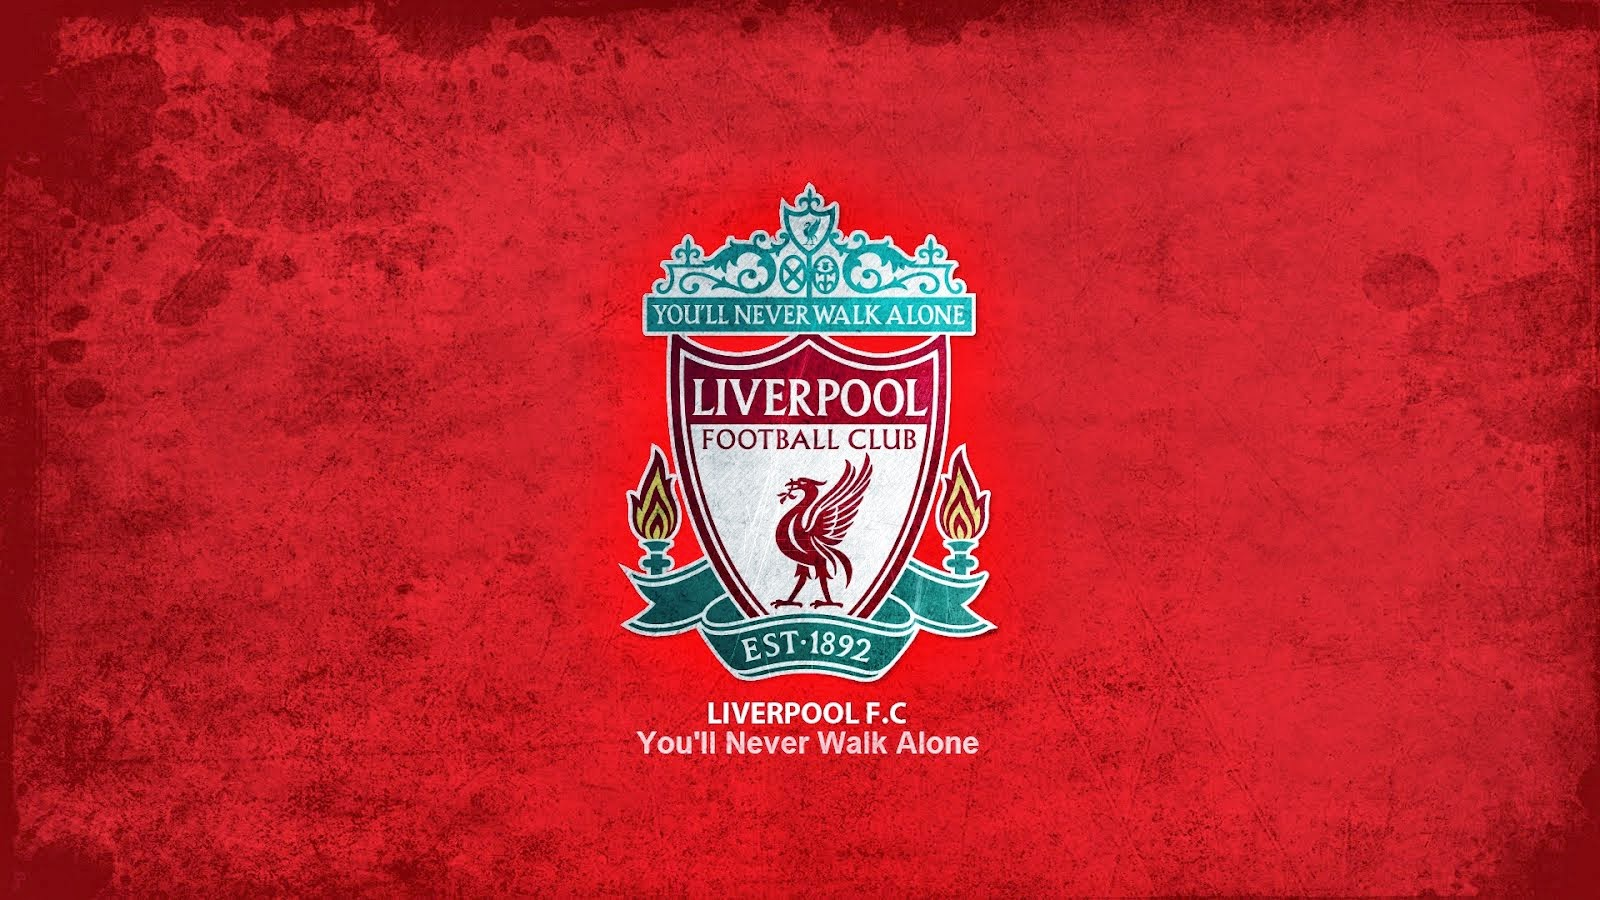 Liverpool F.C. Wallpaper